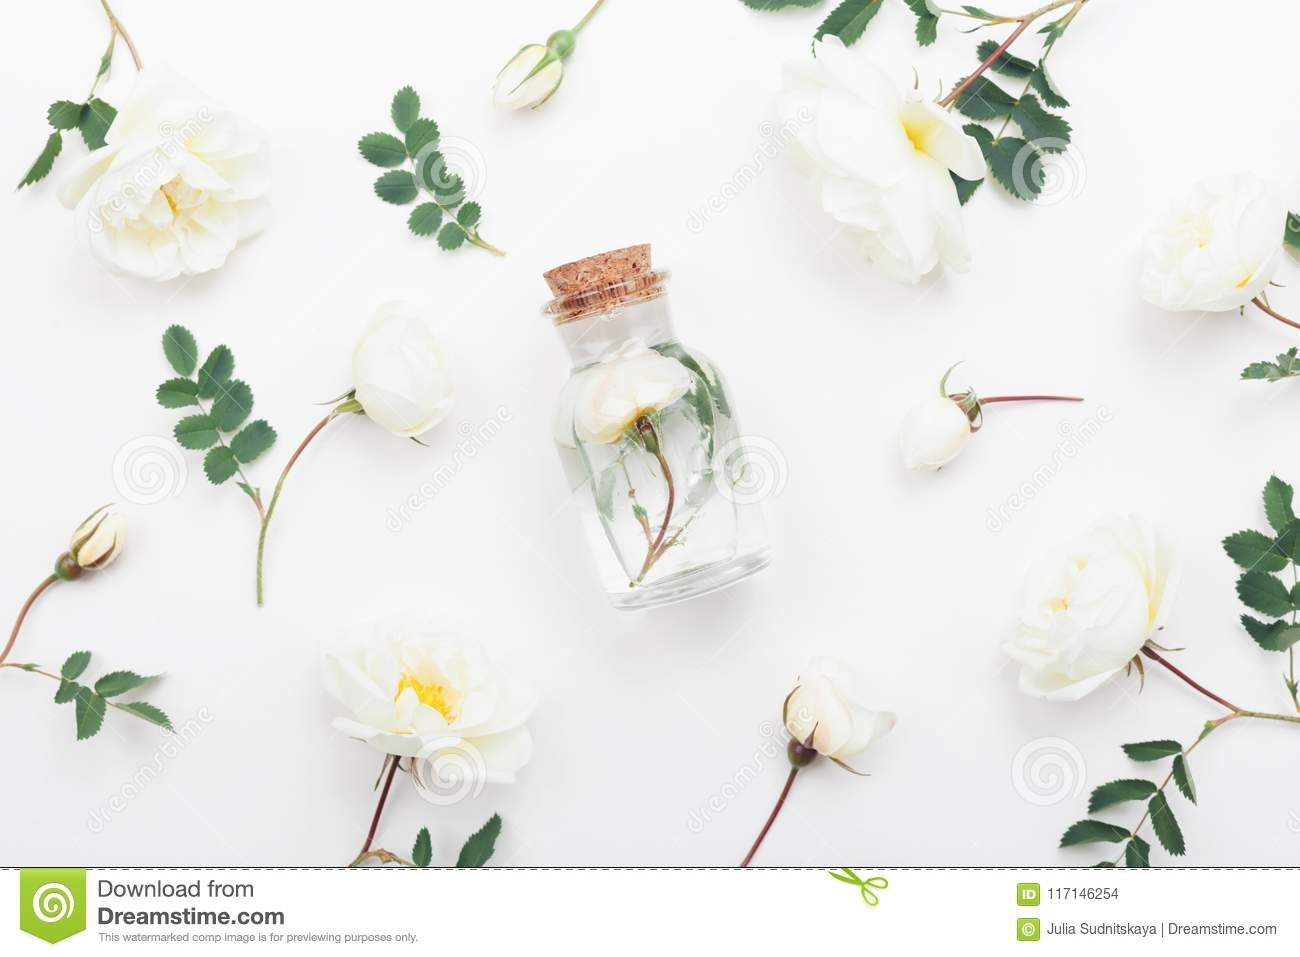 Glass jar with aroma water and beautiful rose flowers for spa and aromatherapy. Top view and flat lay style.